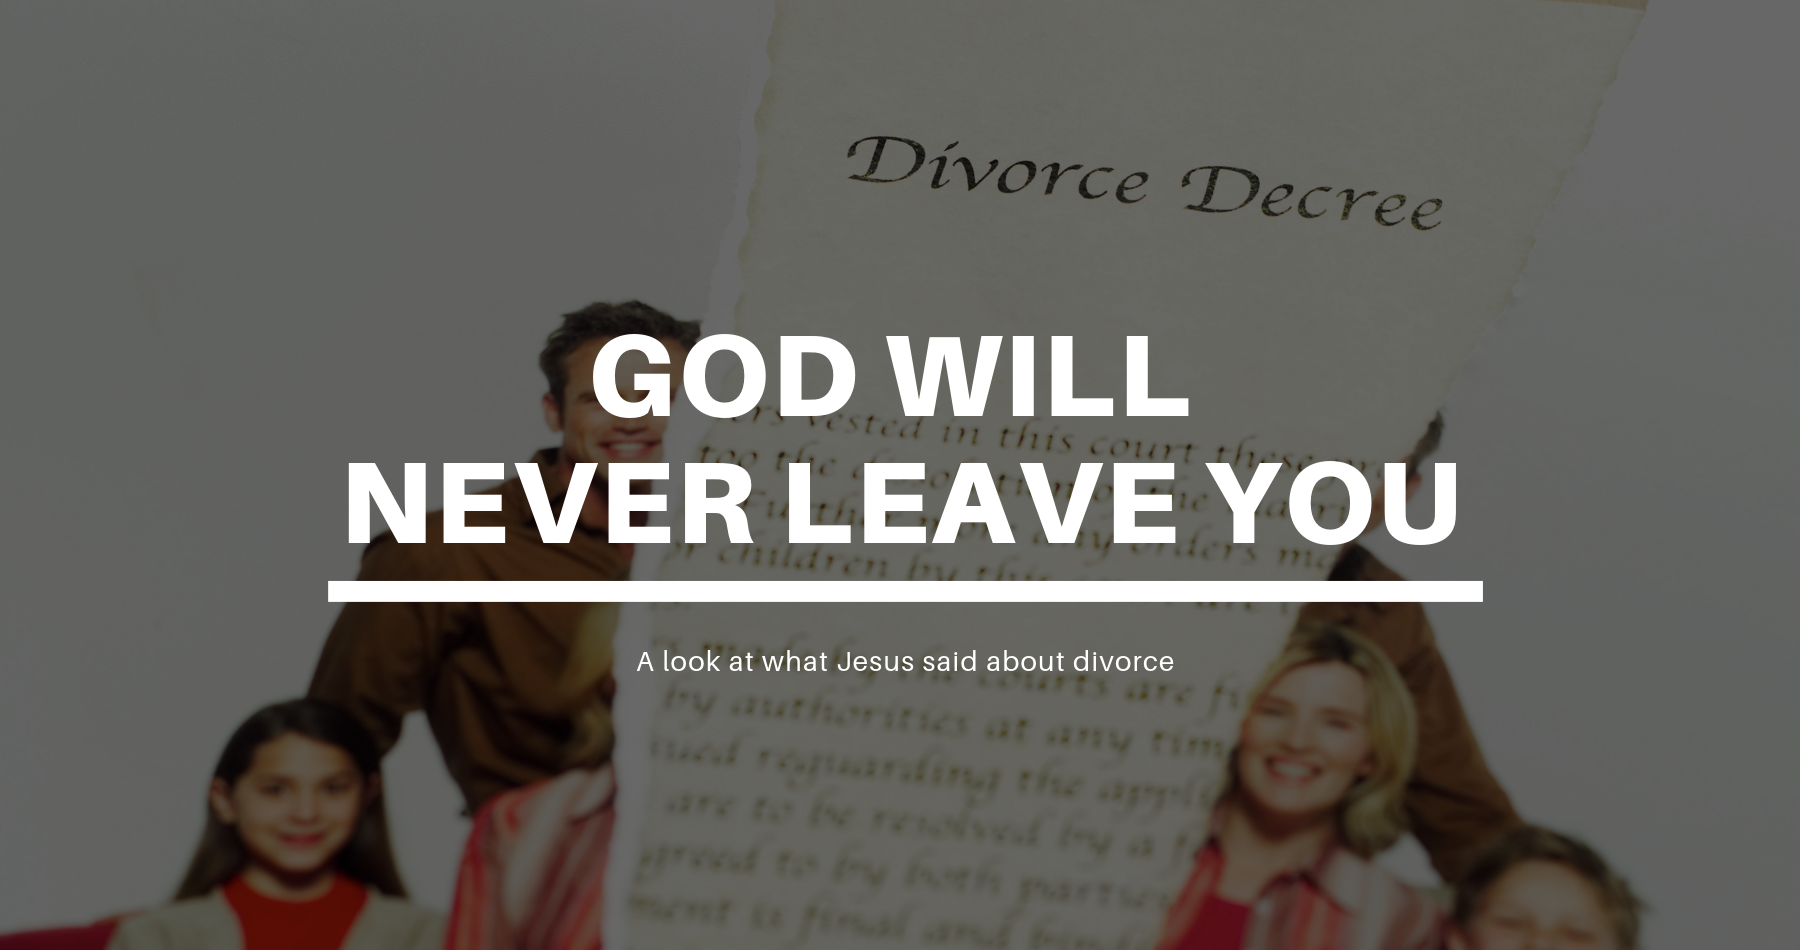 SWM042 - God will never leave you - Uncovering Intimacy